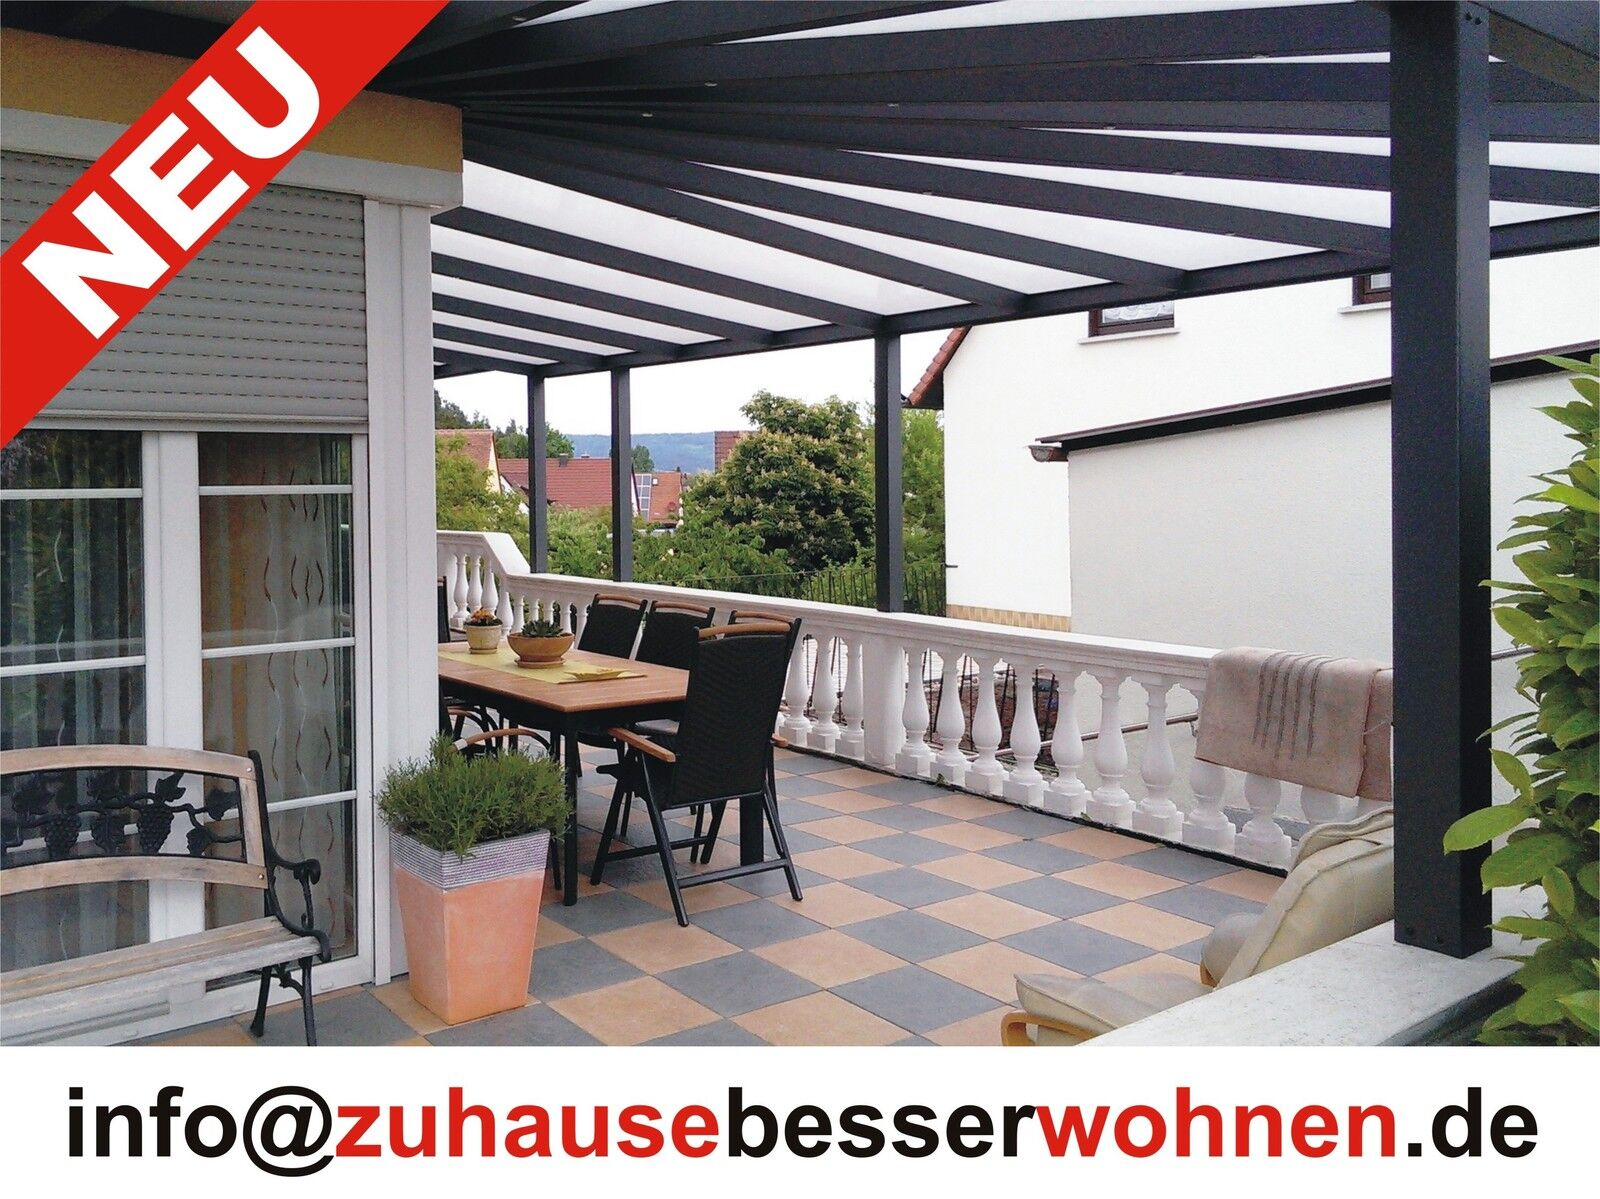 terrassen berdachung carport berdachung aluminium terrassendach vsg glas 4x4m eur. Black Bedroom Furniture Sets. Home Design Ideas